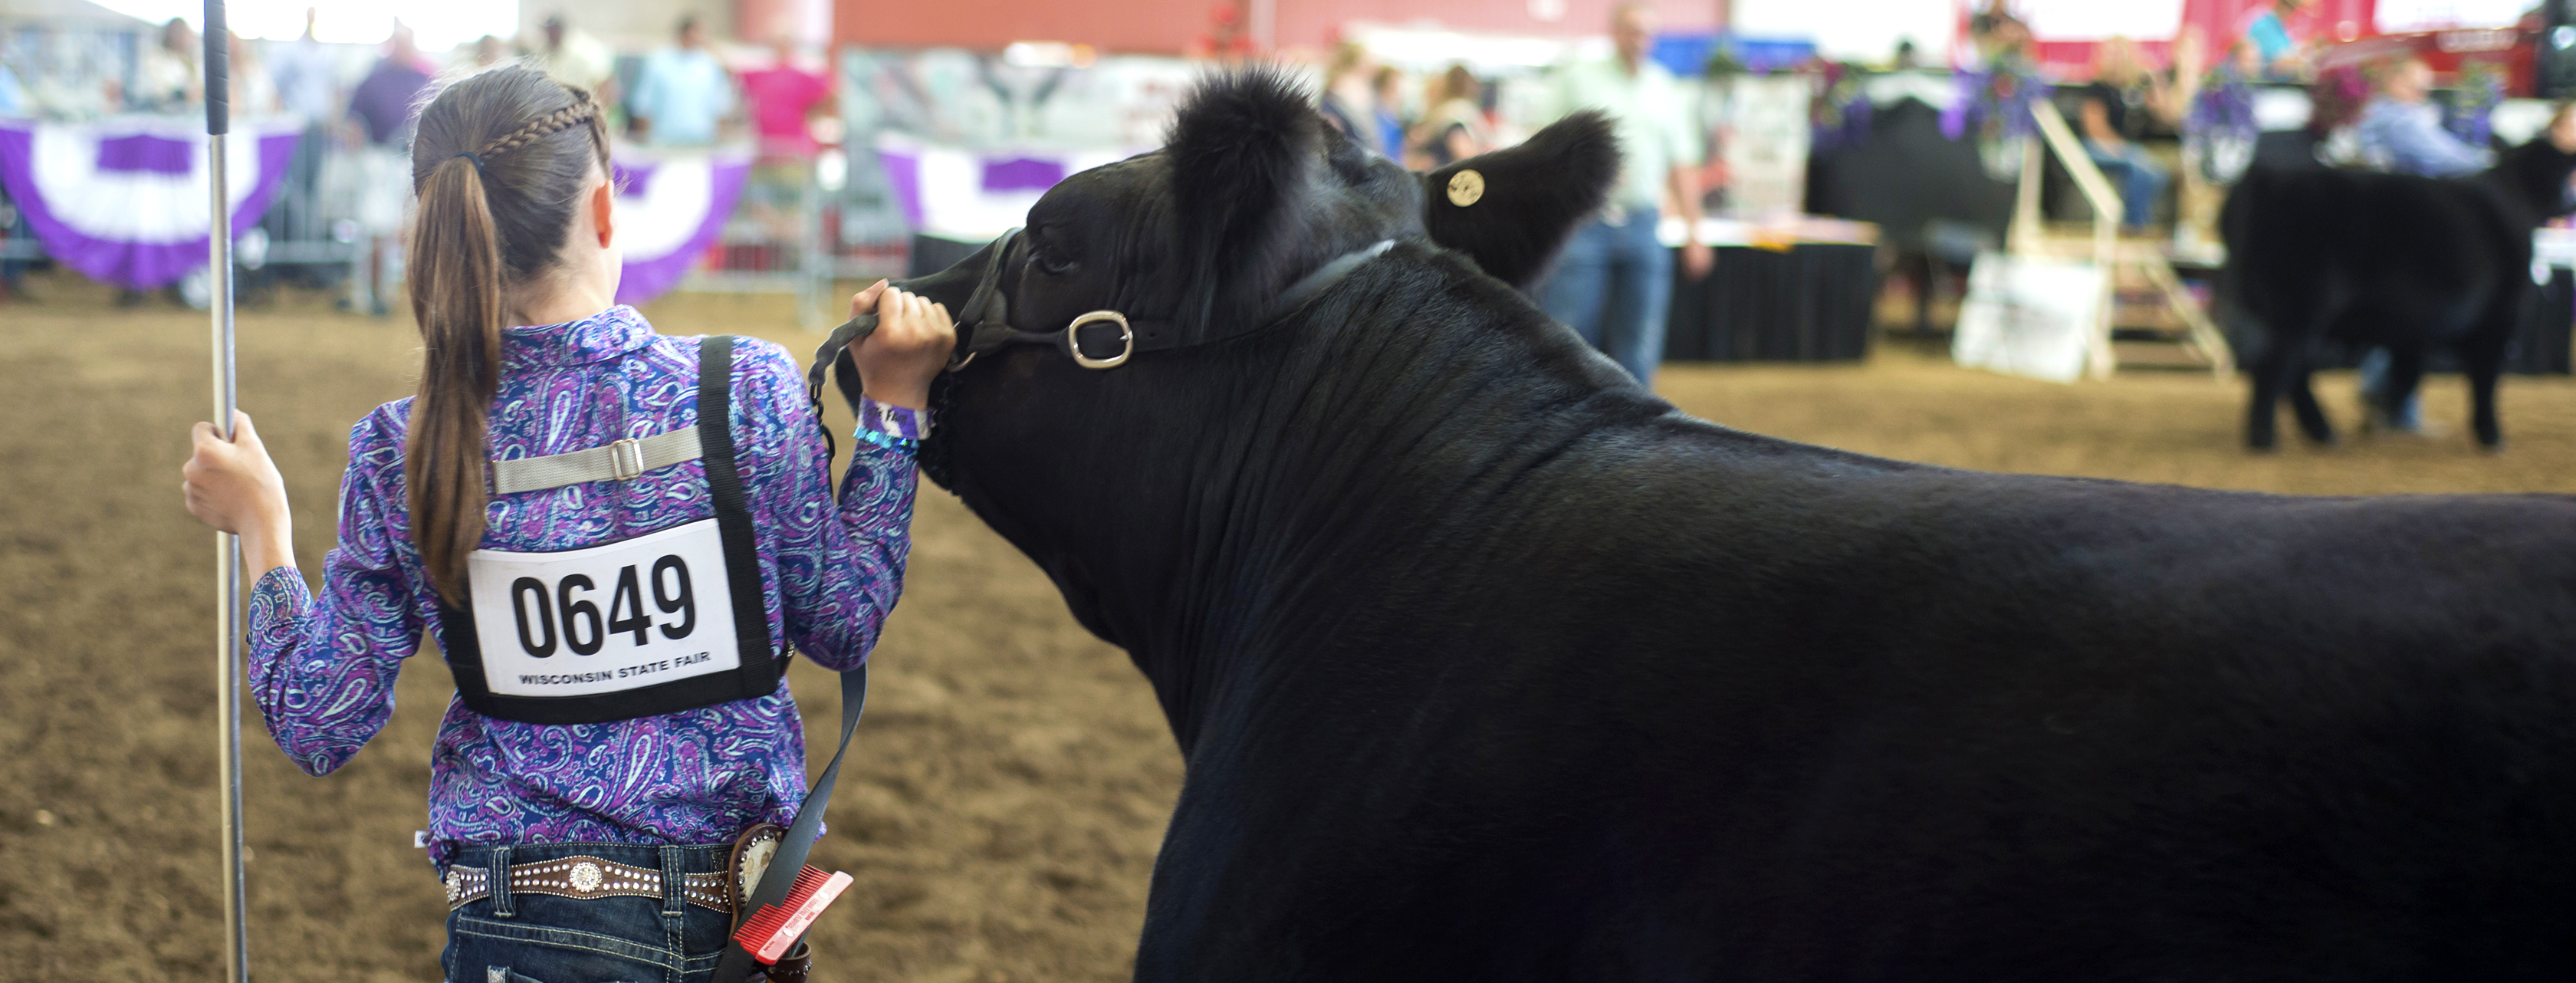 livestock-showing-grooming-hero-banner-0817-1680x641.jpg